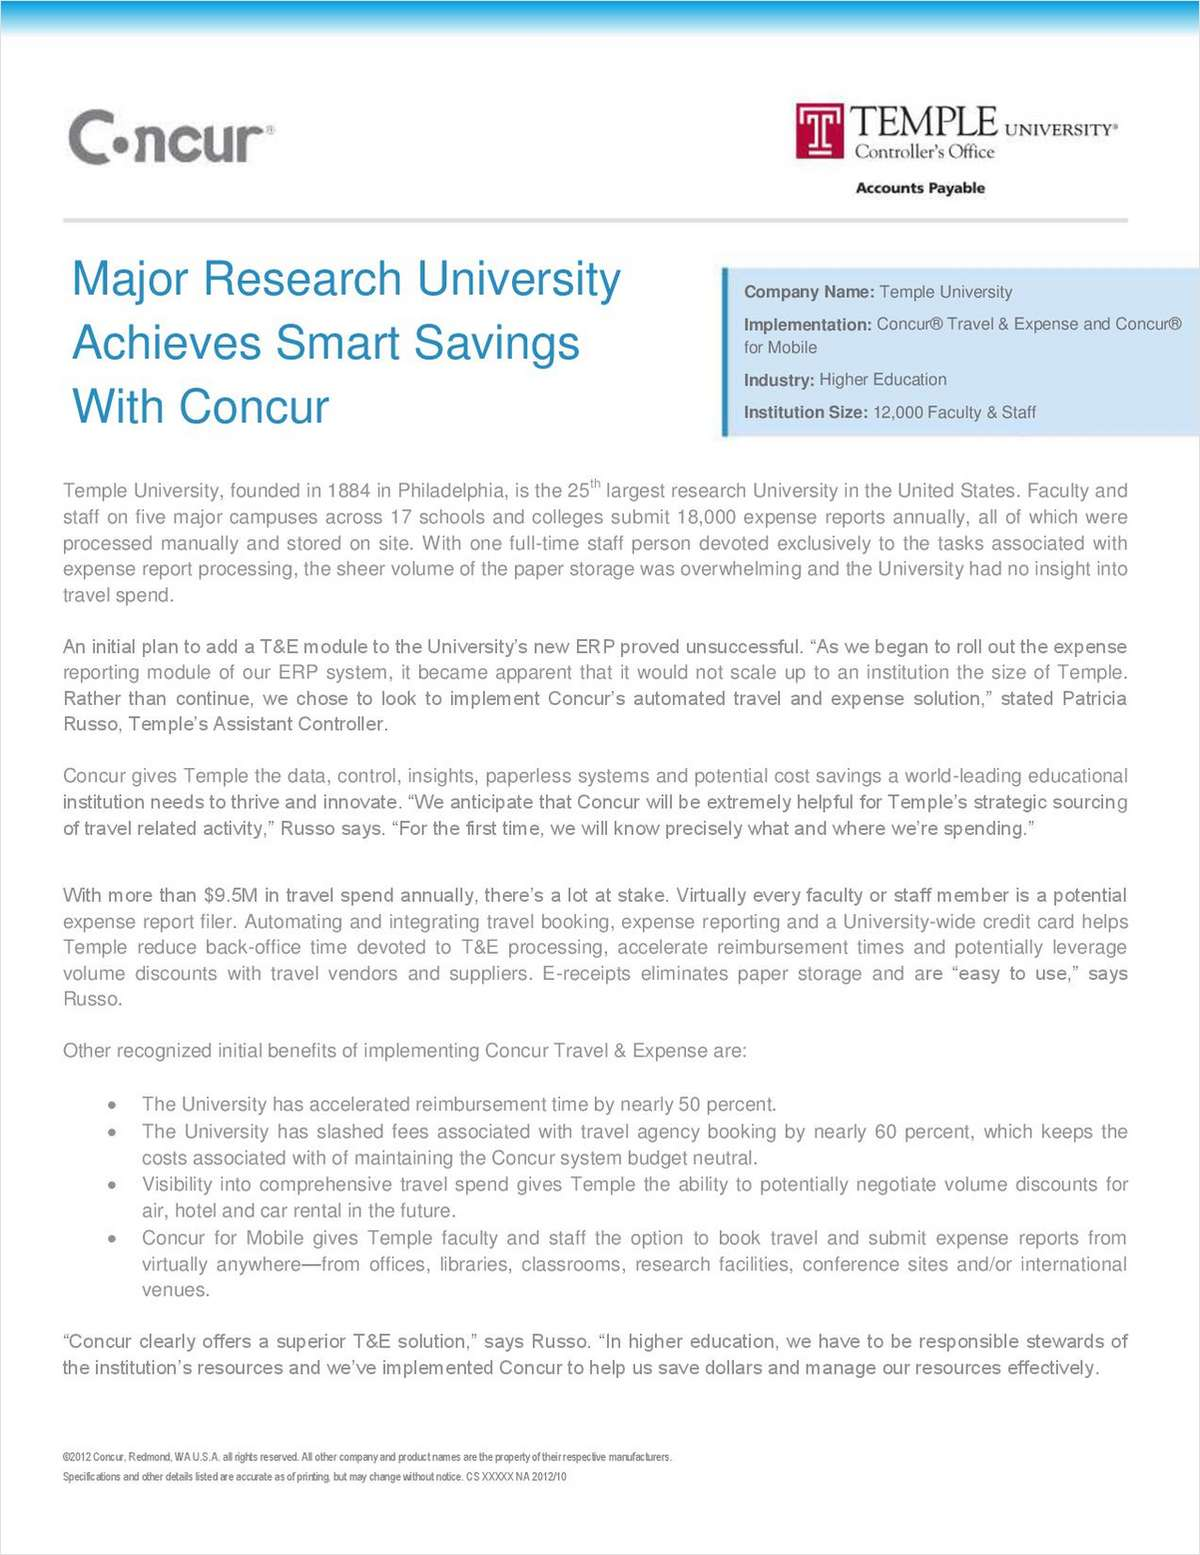 Major Research University Achieves Cost Savings with Travel and Expense Management Automation